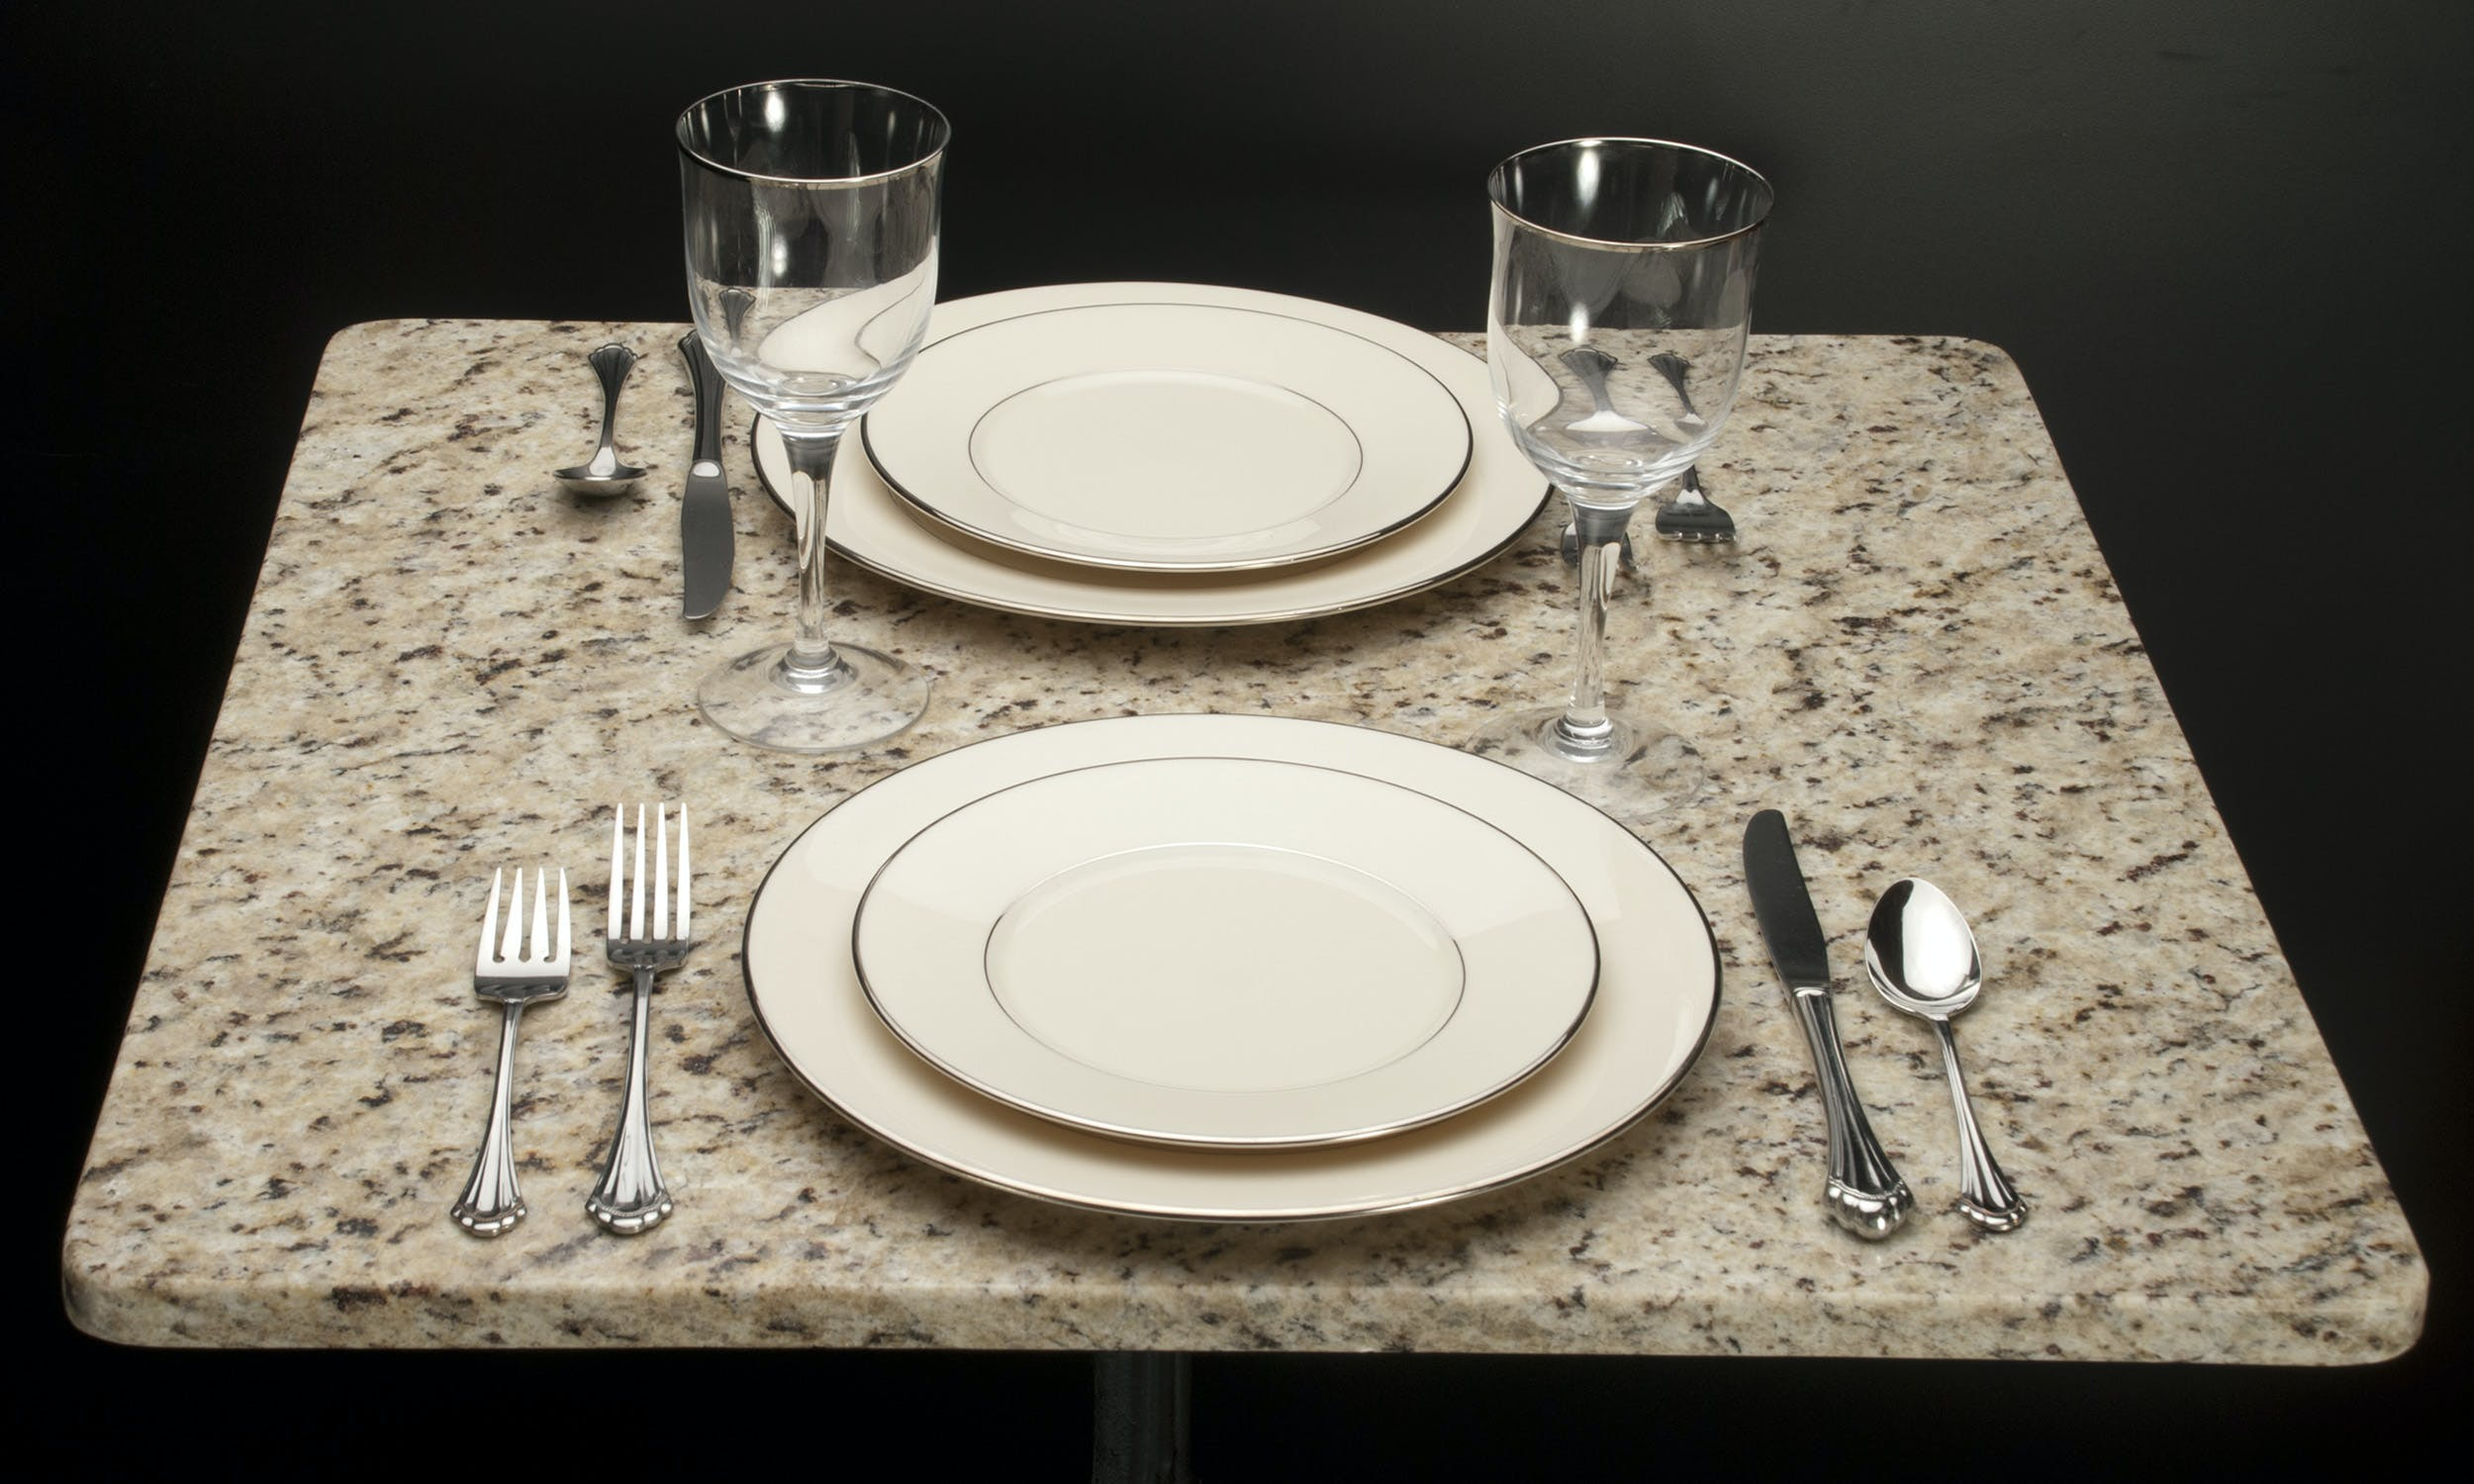 Giallo Ornamental Granite Table top sold by Cafe Tables